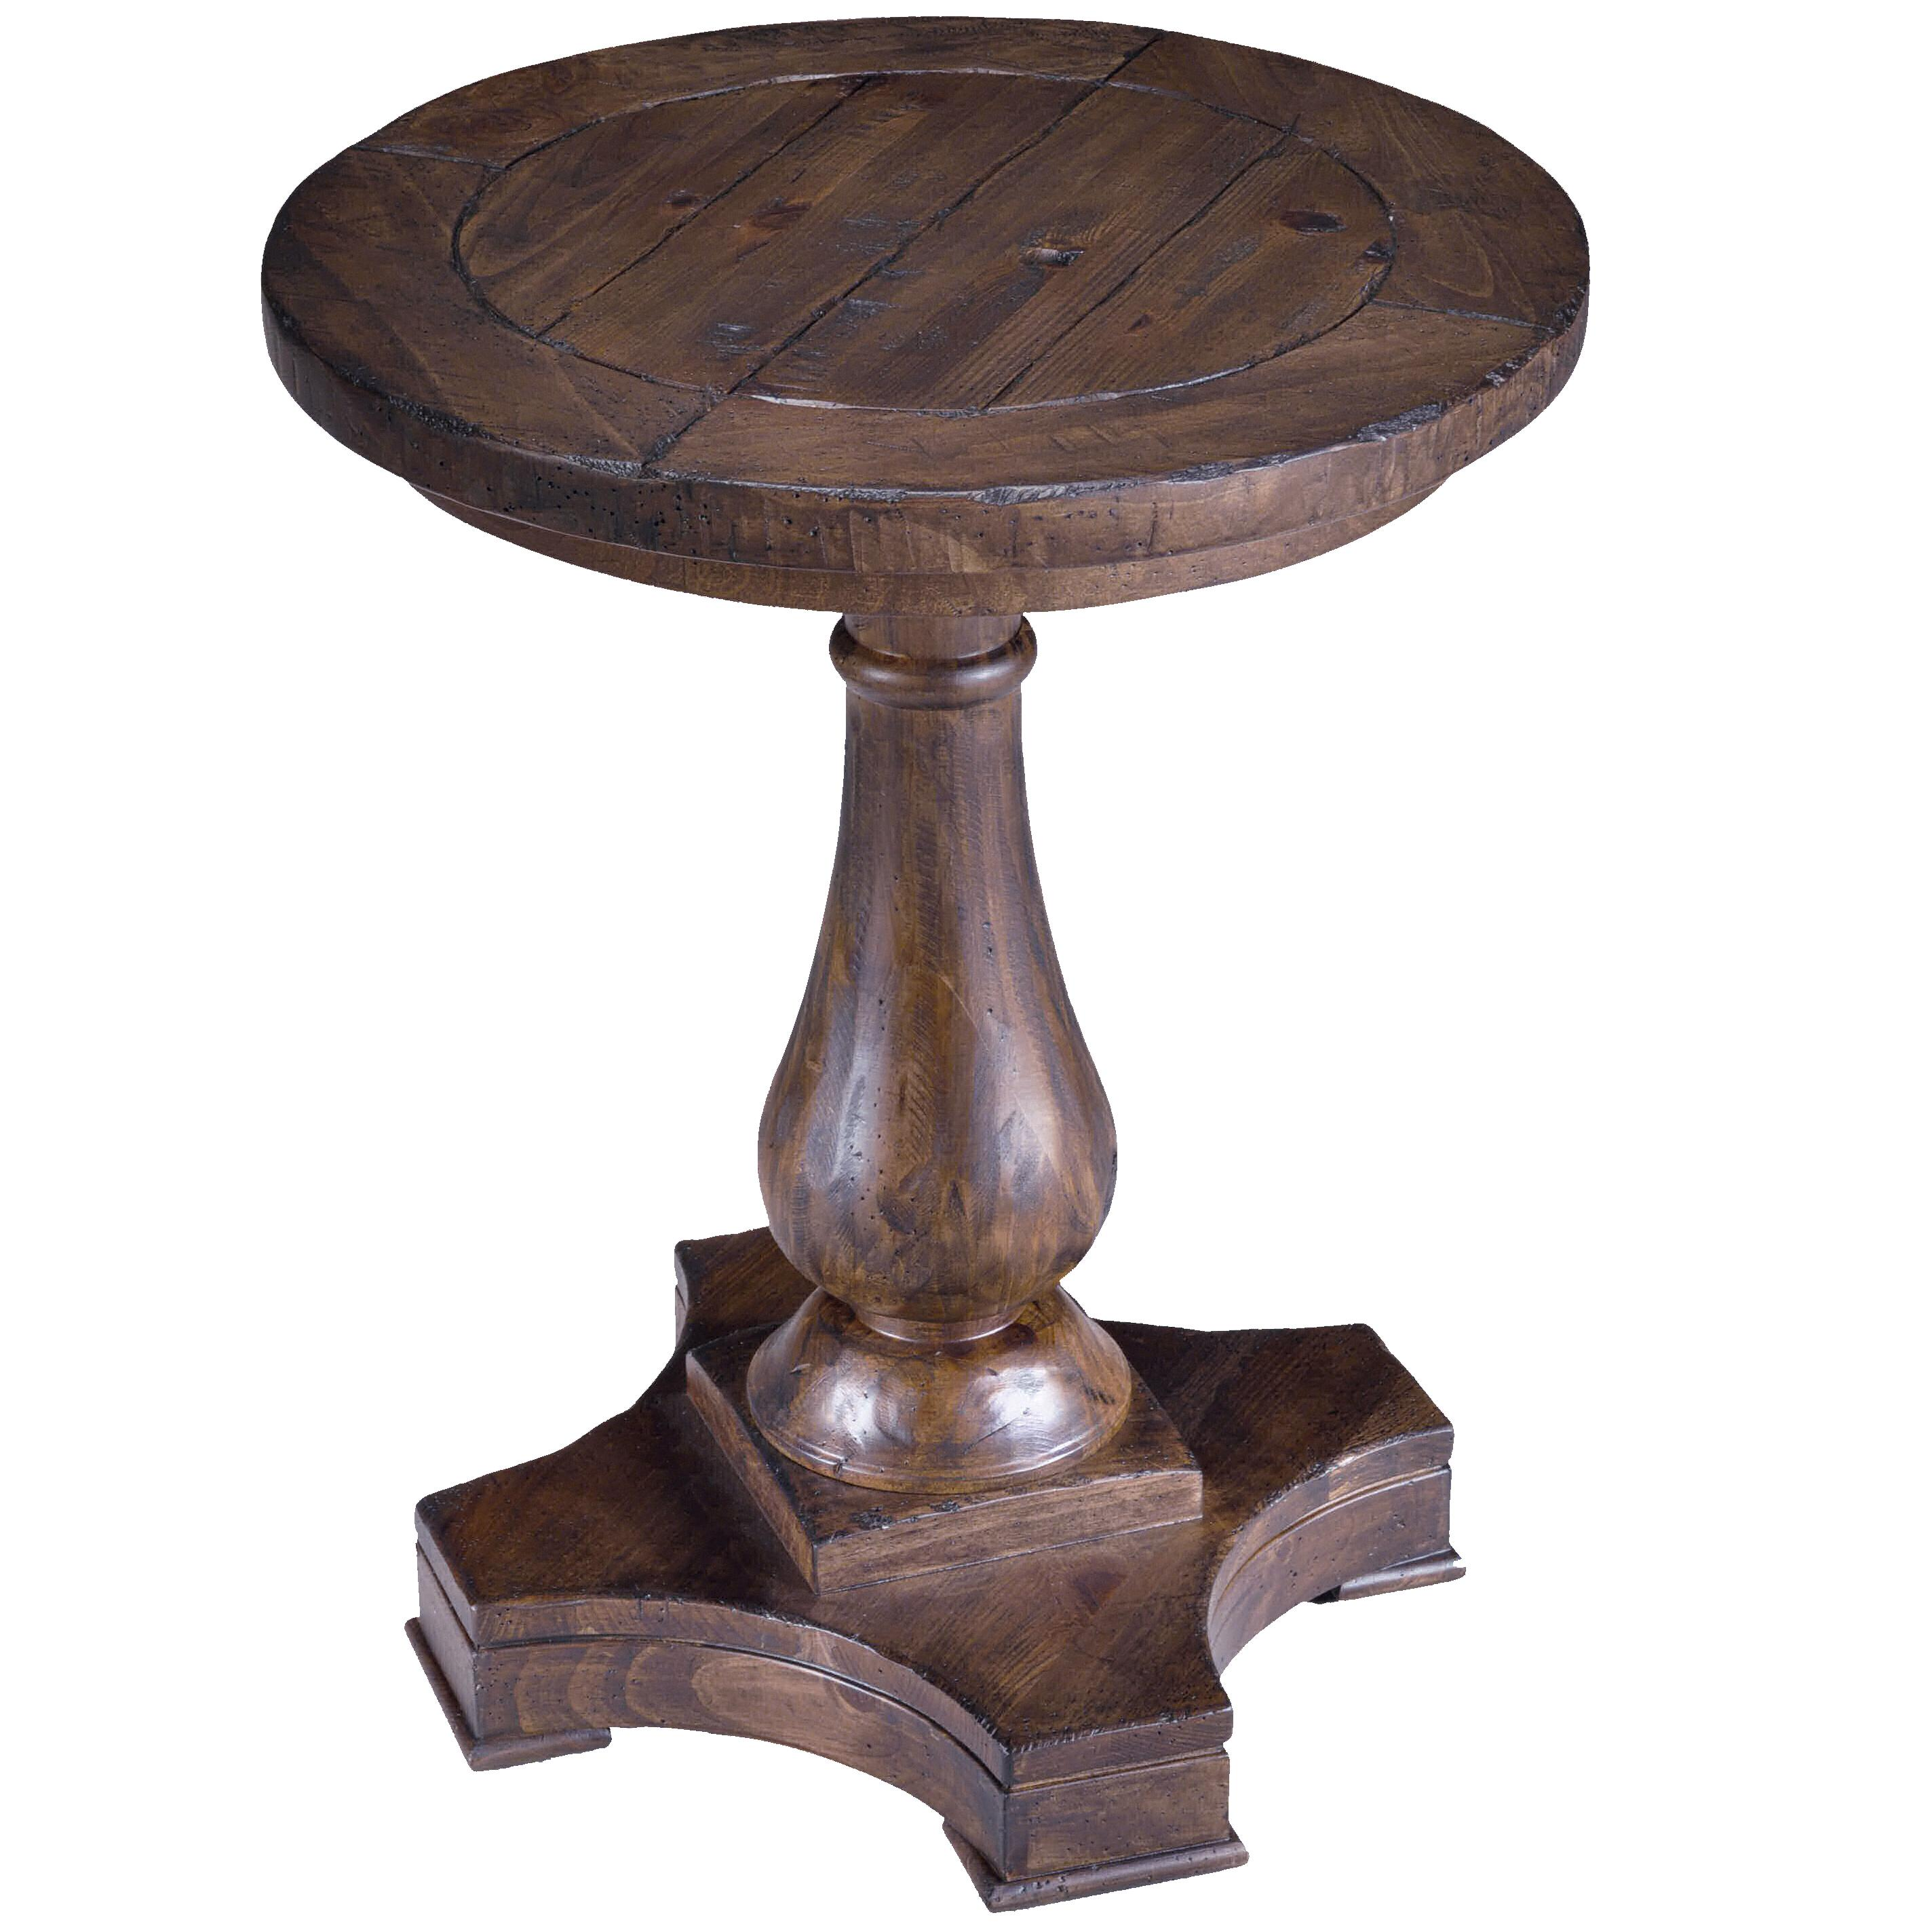 round column pedestal accent end table magnussen home wolf and products color densbury antique hampton bay chairs ceramic lamp lawn target pier one large wooden trestle apothecary